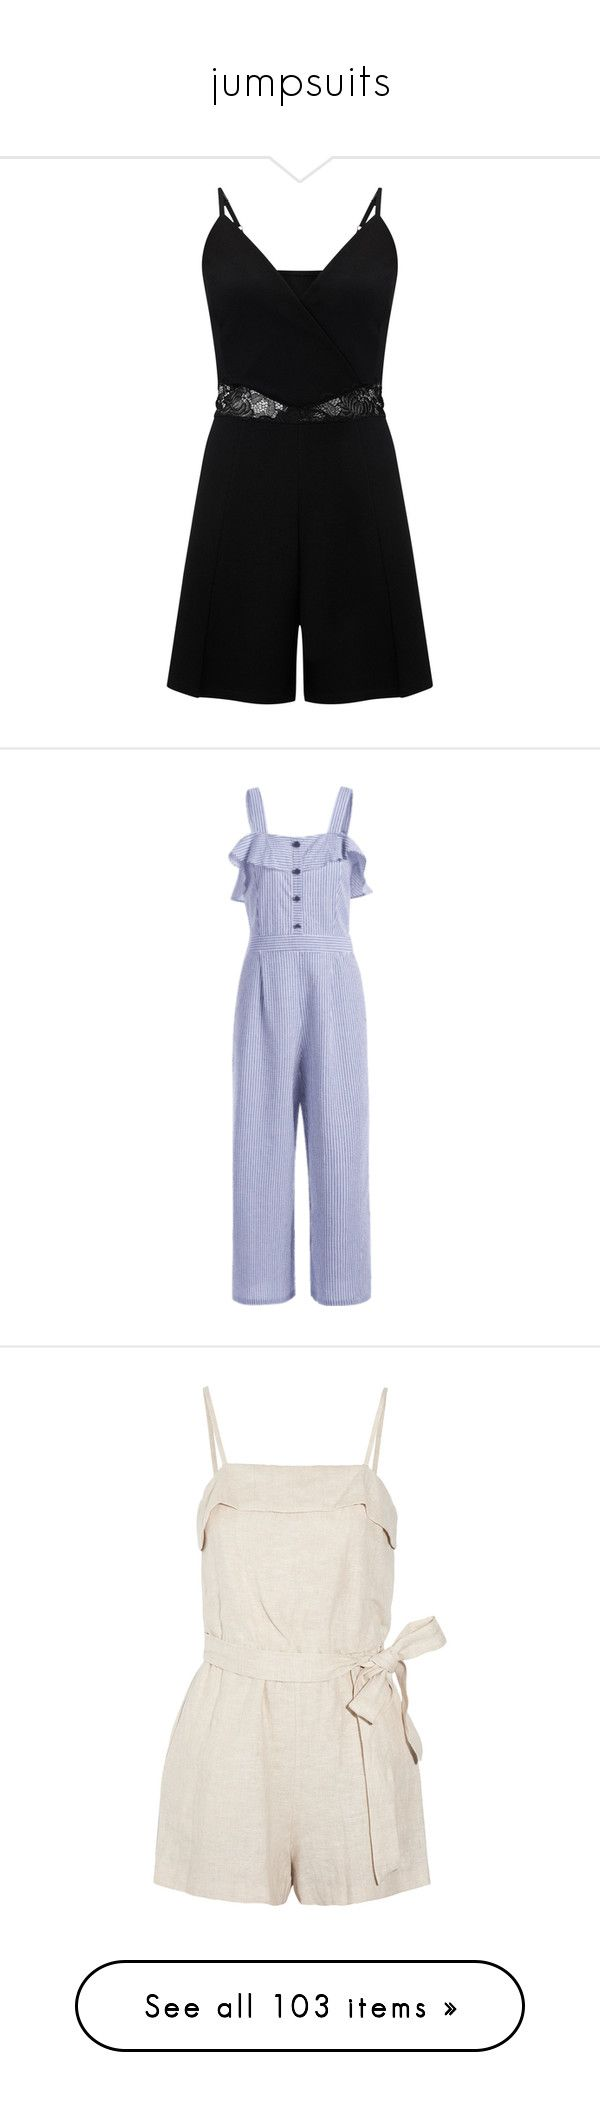 """""""jumpsuits"""" by georgia-aemelly ❤ liked on Polyvore featuring miss selfridge, jumpsuits, stripe romper, overlay jumpsuit, playsuit jumpsuit, striped romper, overlay romper, rompers, playsuits and dresses"""